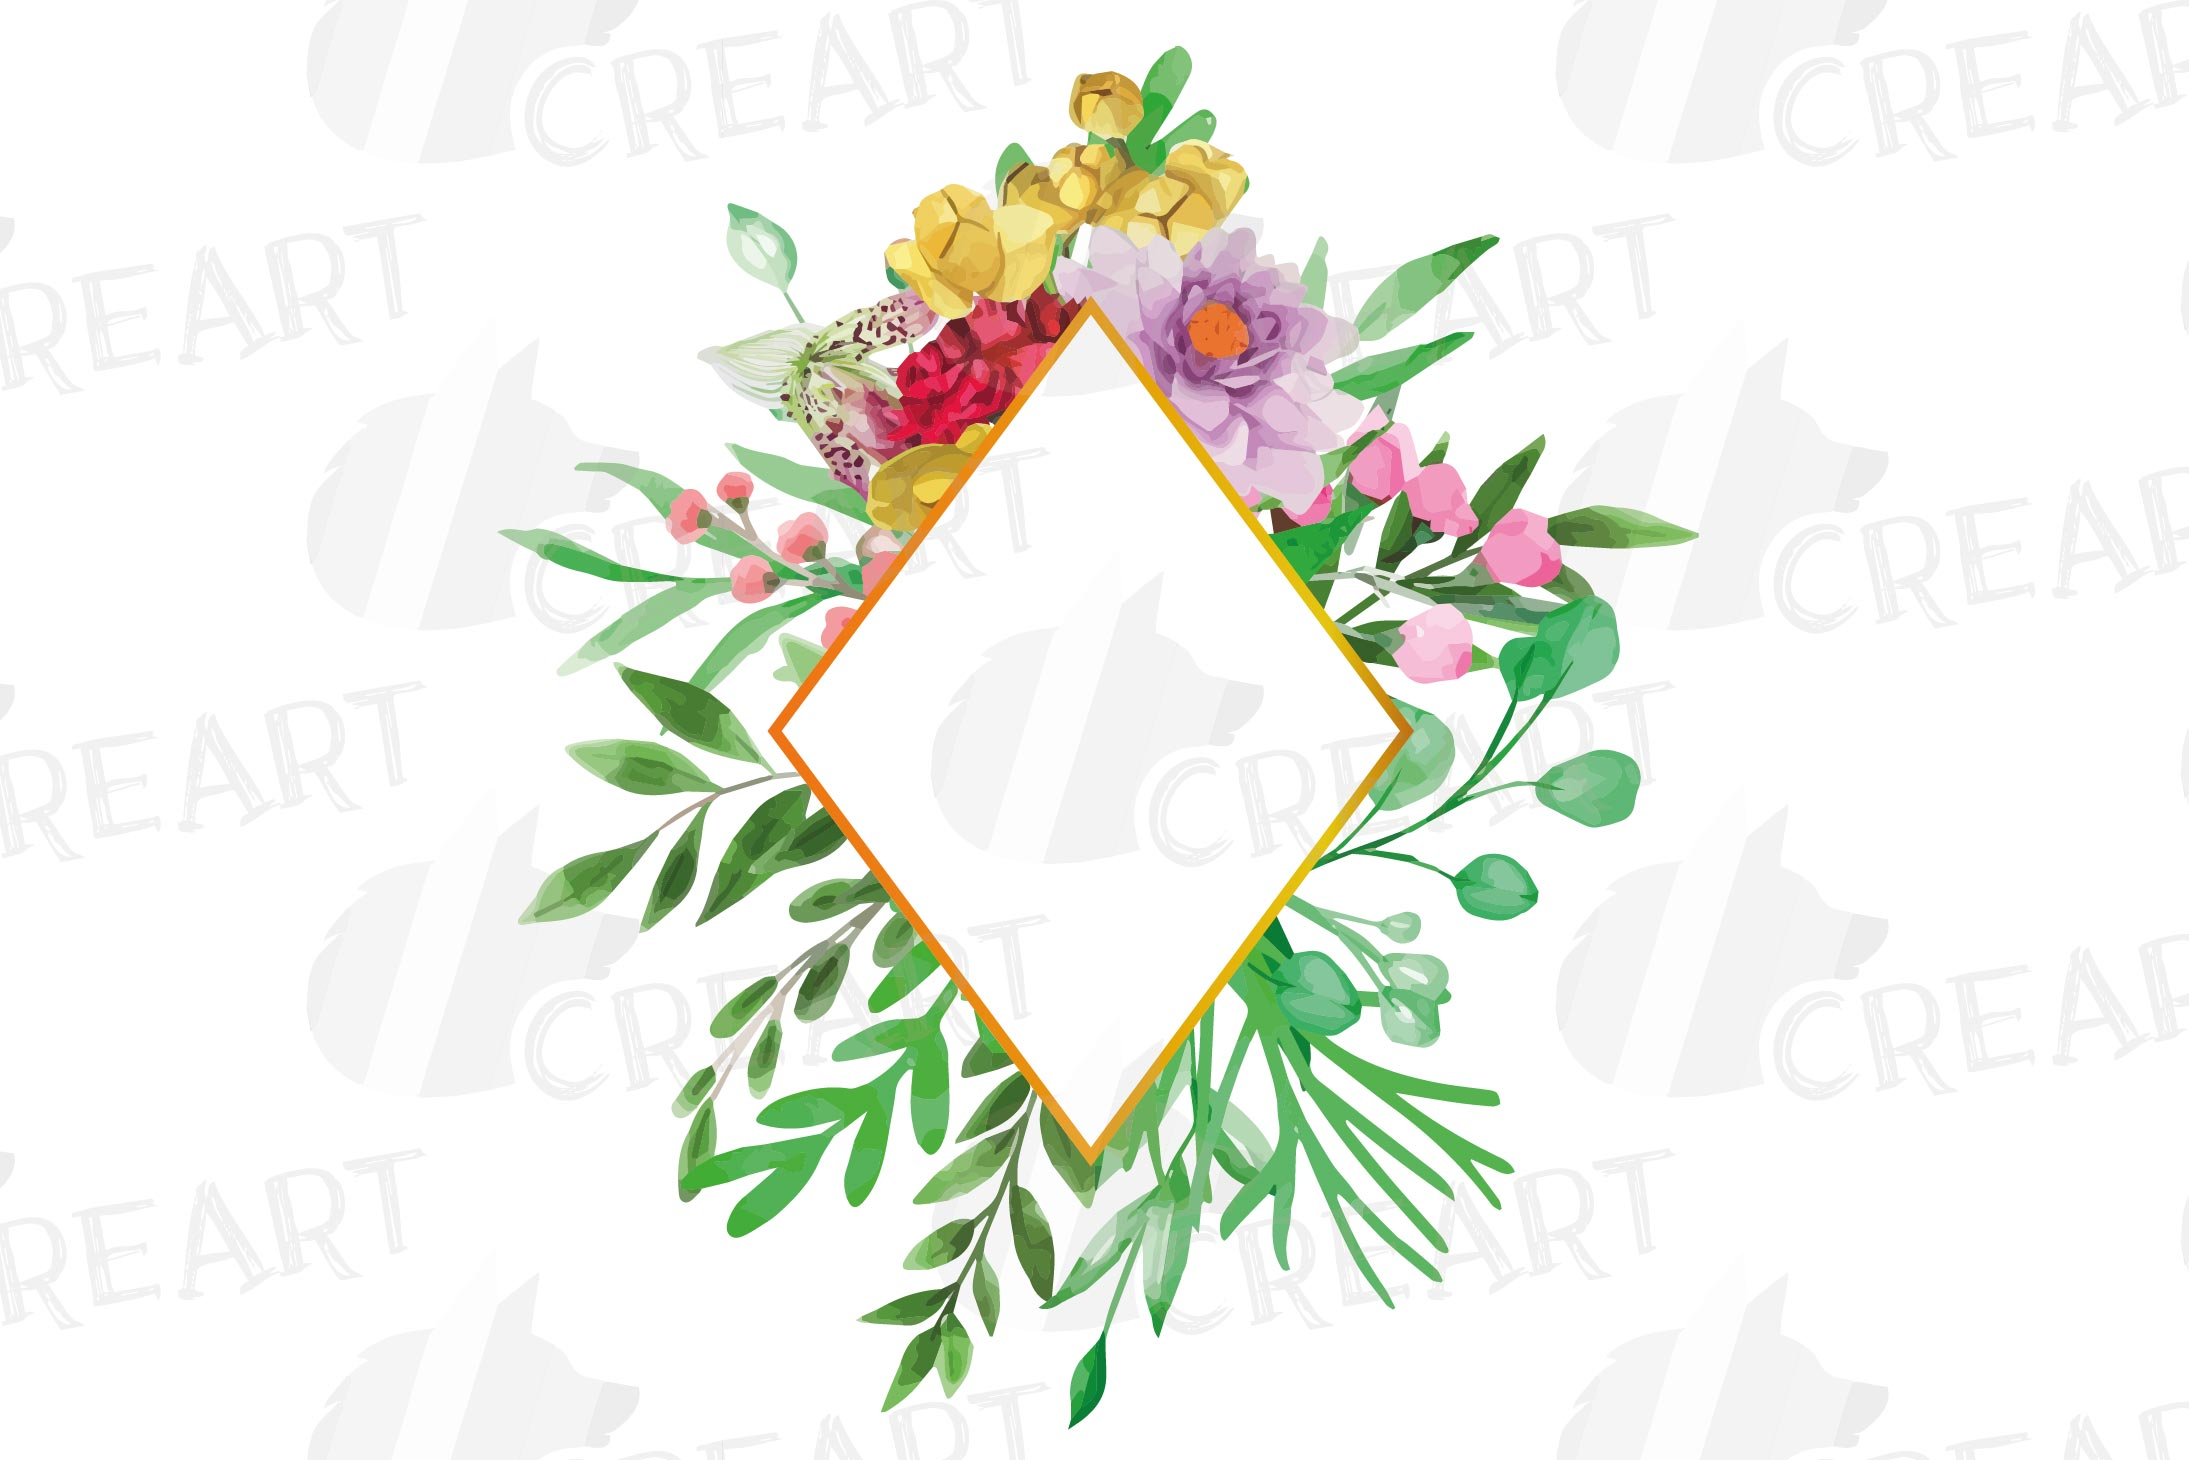 Watercolor floral floral frames and borders clip art pack example image 9